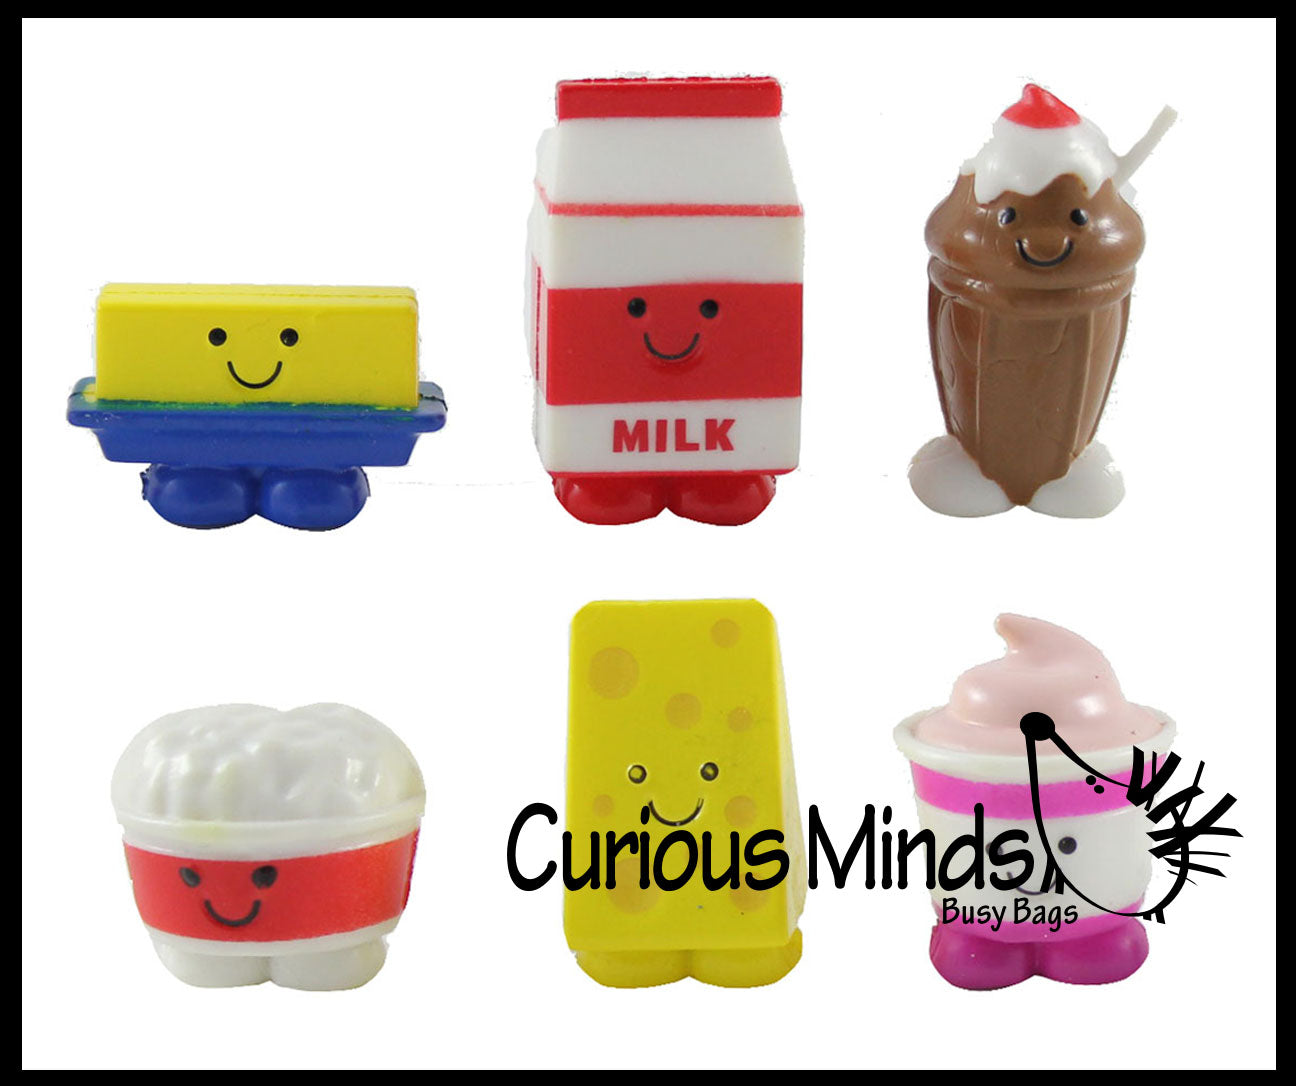 Cute Dairy Food Mini Toy Figurines Replicas - Math Counters, Sorting or Alphabet Objects, Playsets